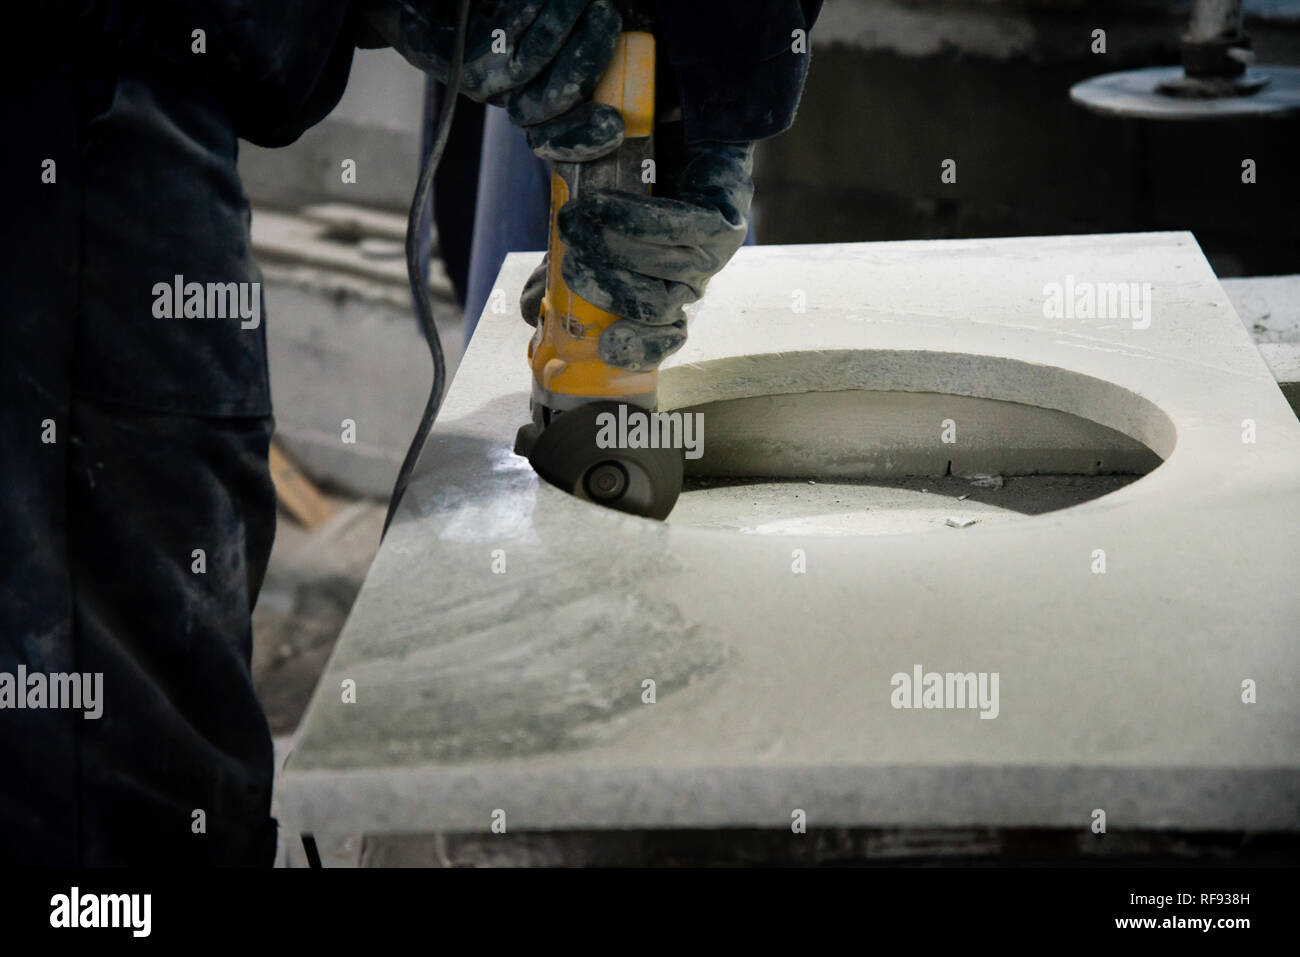 Man polishing marble stone table by small angle grinder. Stone cutter - Stock Image